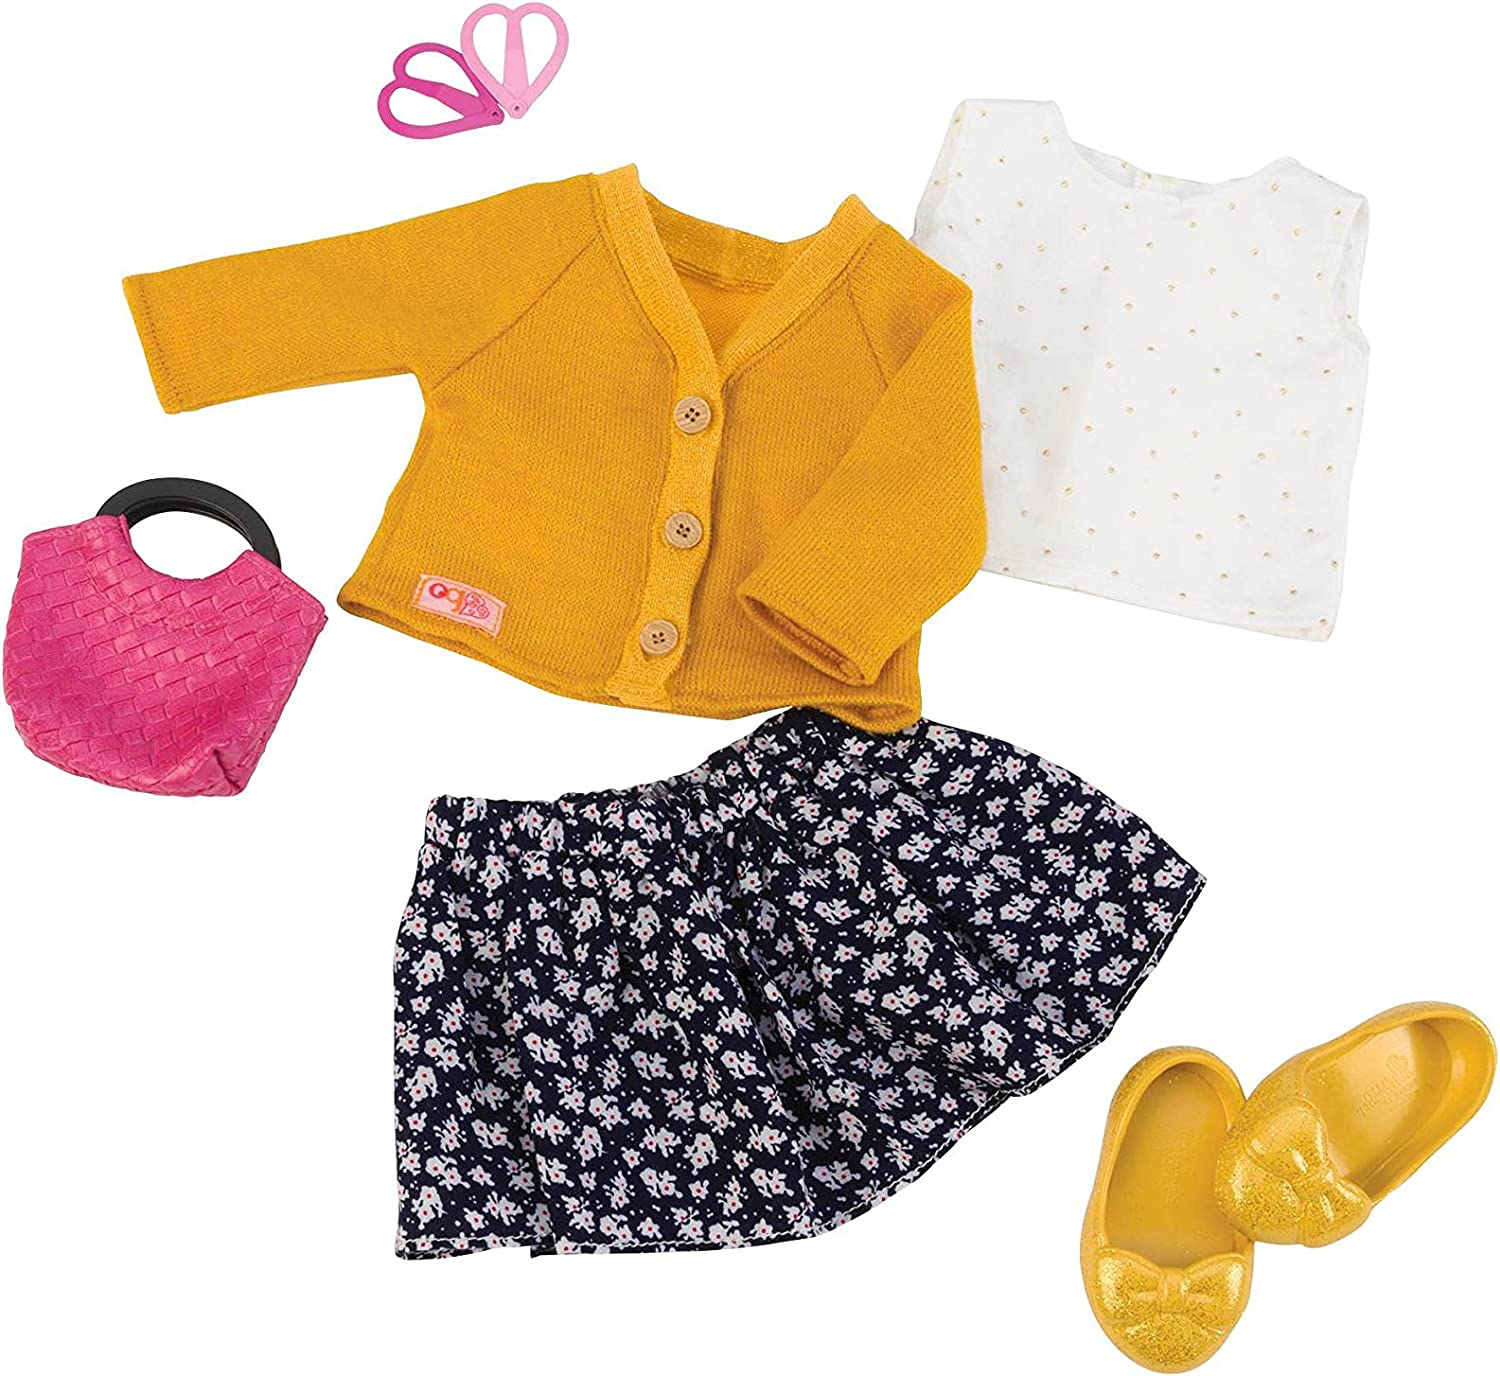 Our Generation Goldie Luxe Doll Deluxe Outfit